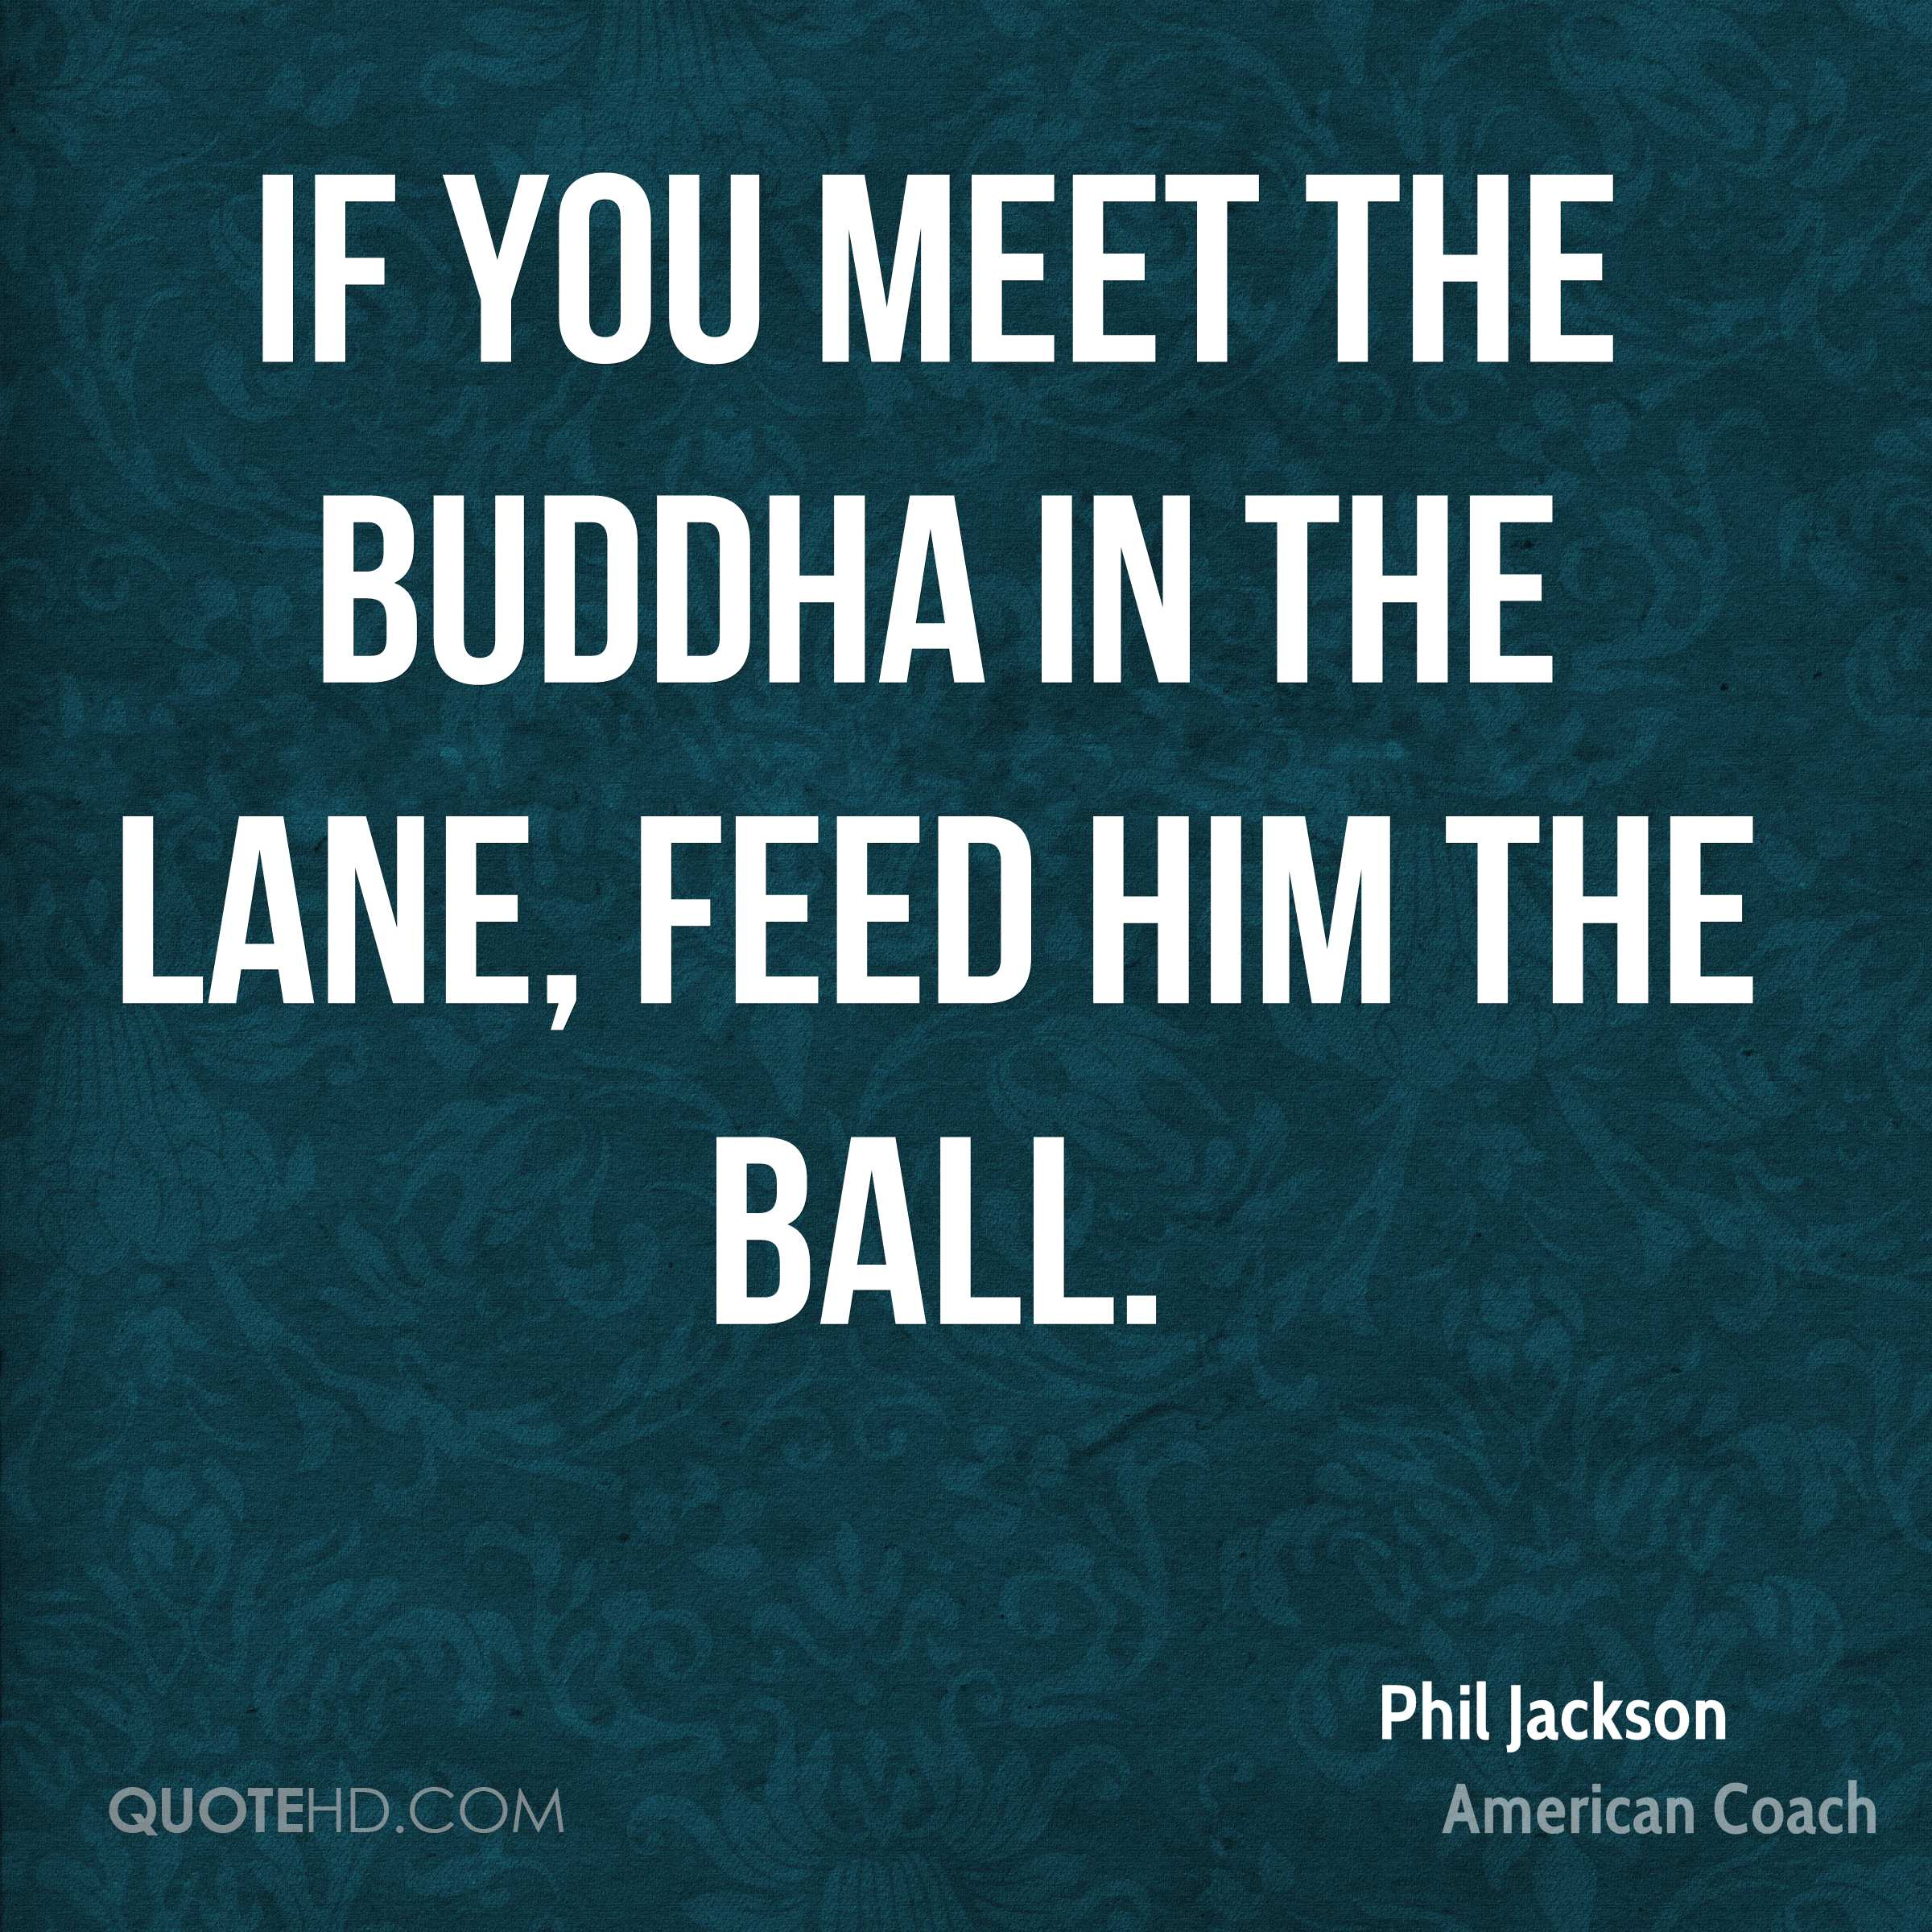 If you meet the Buddha in the lane, feed him the ball.